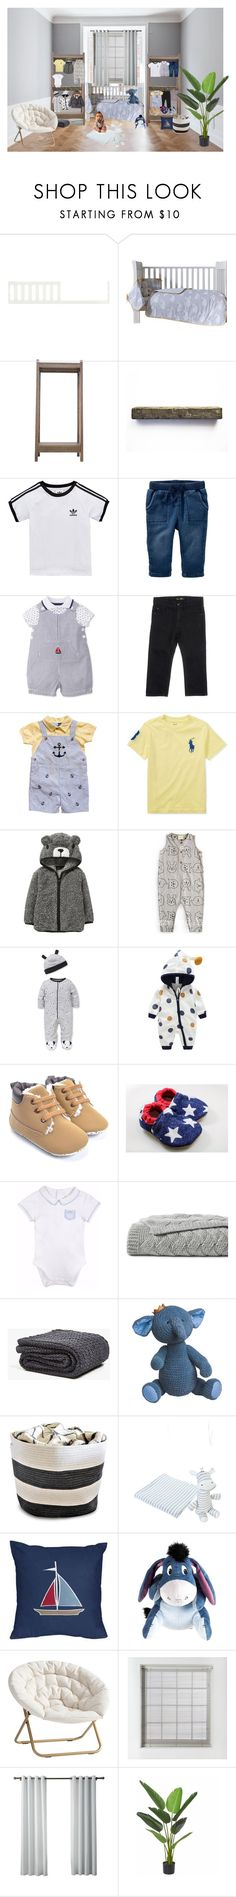 """Baby boy"" by isabelletrabold ❤ liked on Polyvore featuring interior, interiors, interior design, home, home decor, interior decorating, Babyletto, adidas Originals, Little Me and Carter's"